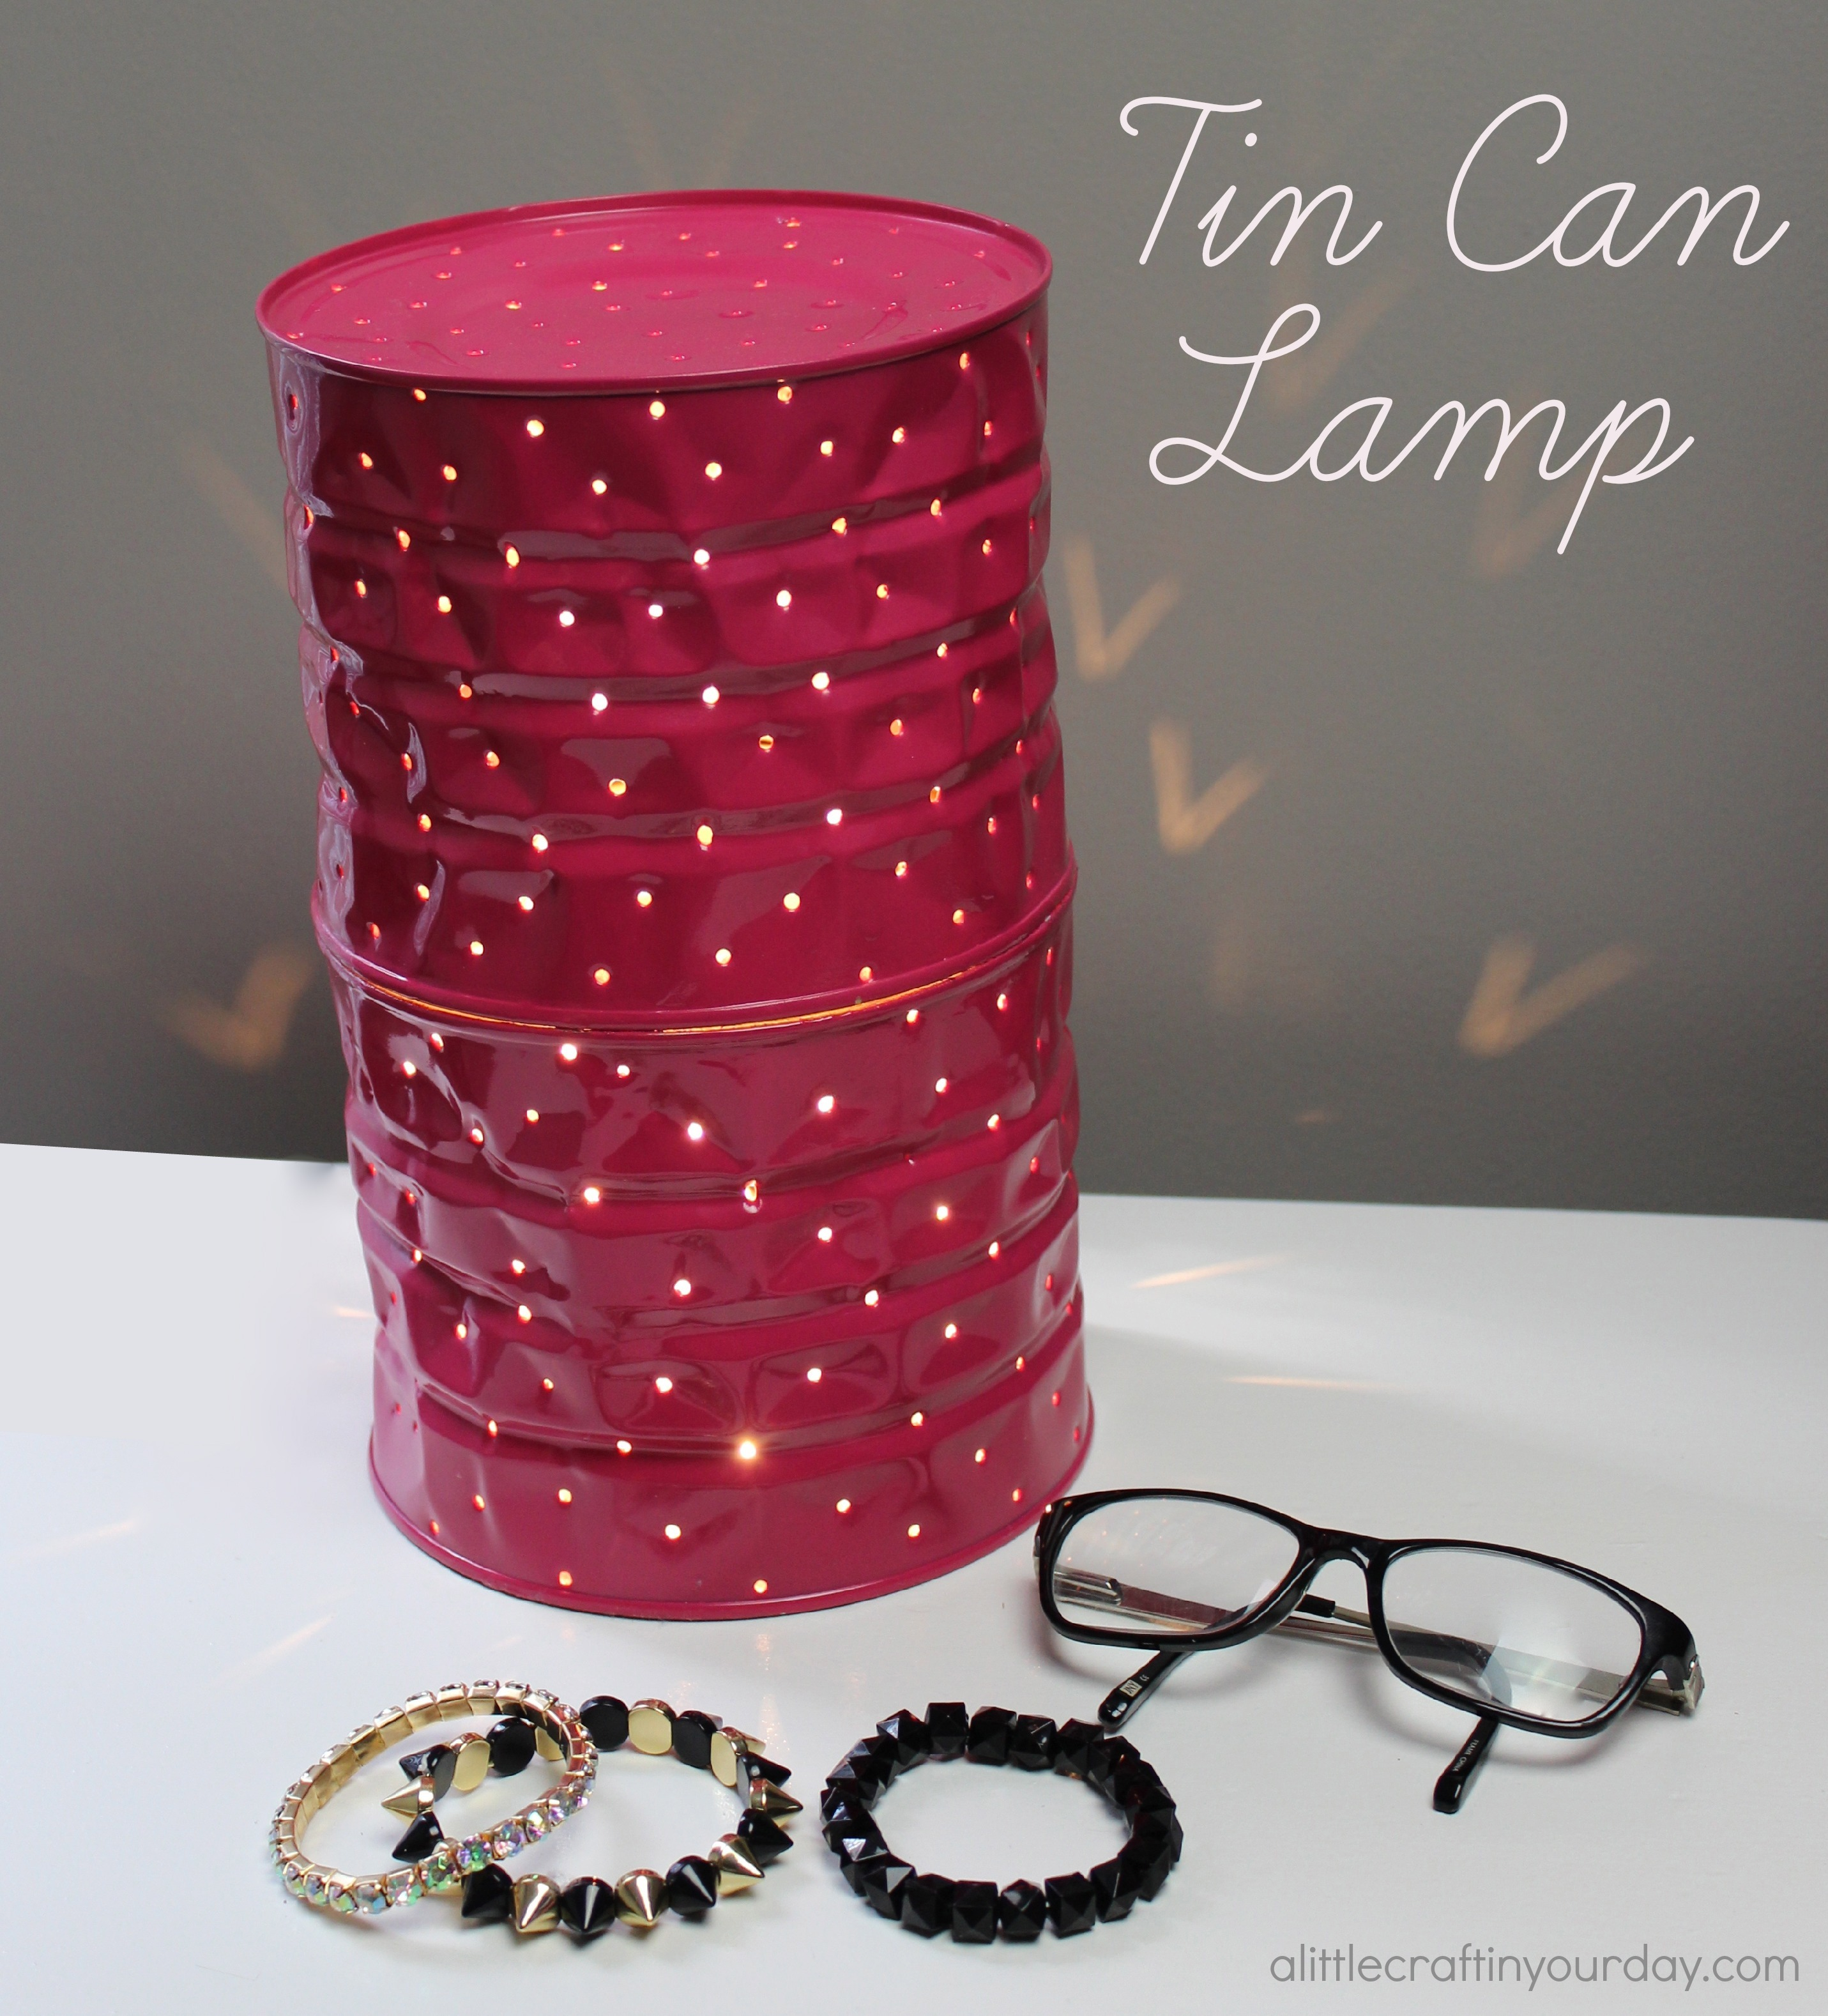 Tin can lamp a little craft in your day for Large tin can crafts